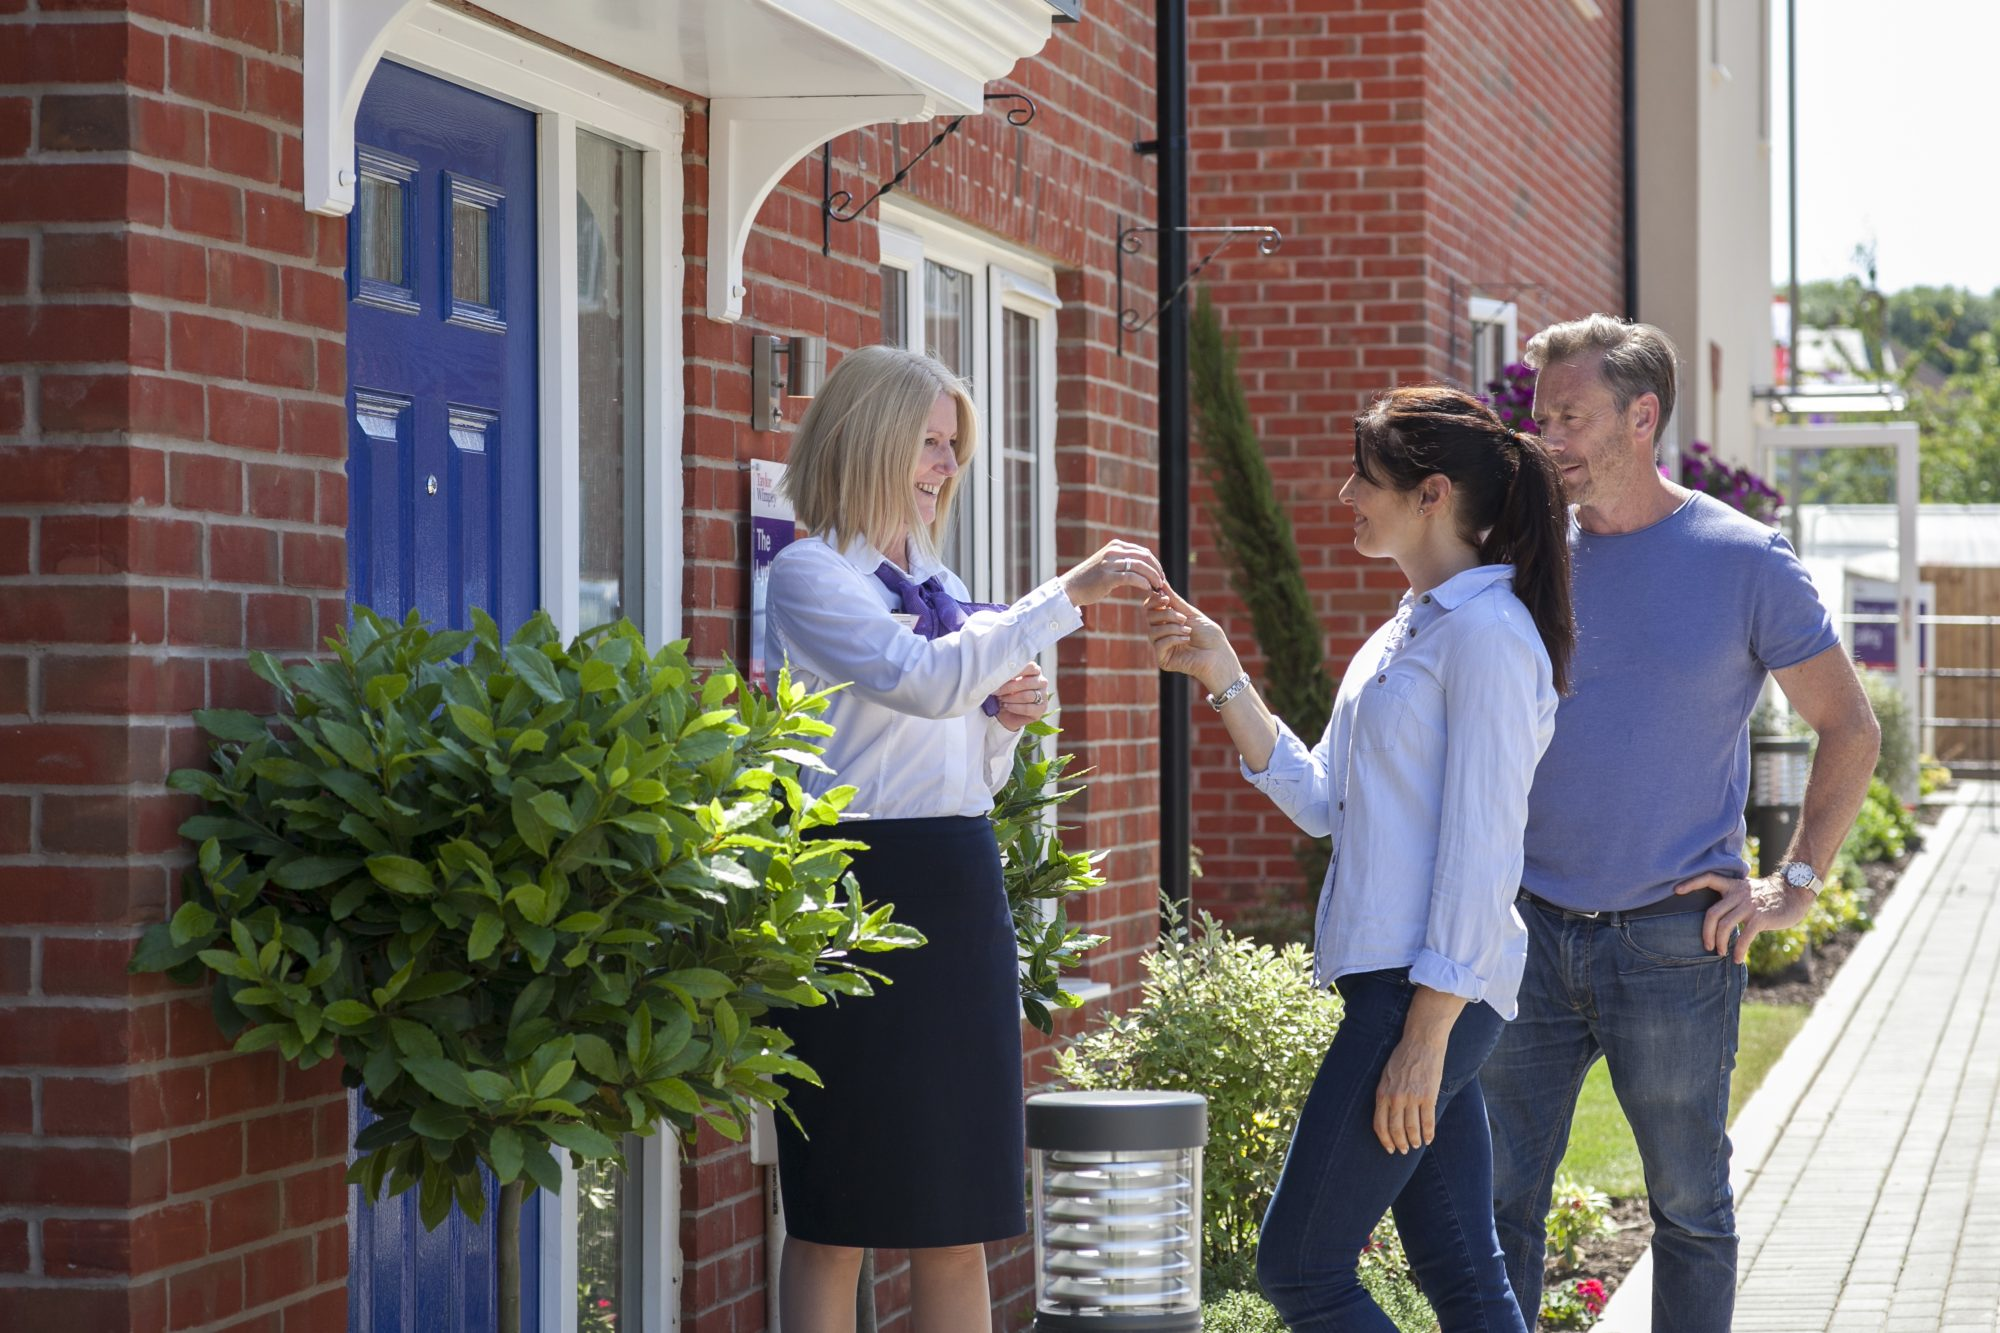 Top tips for visiting a show home